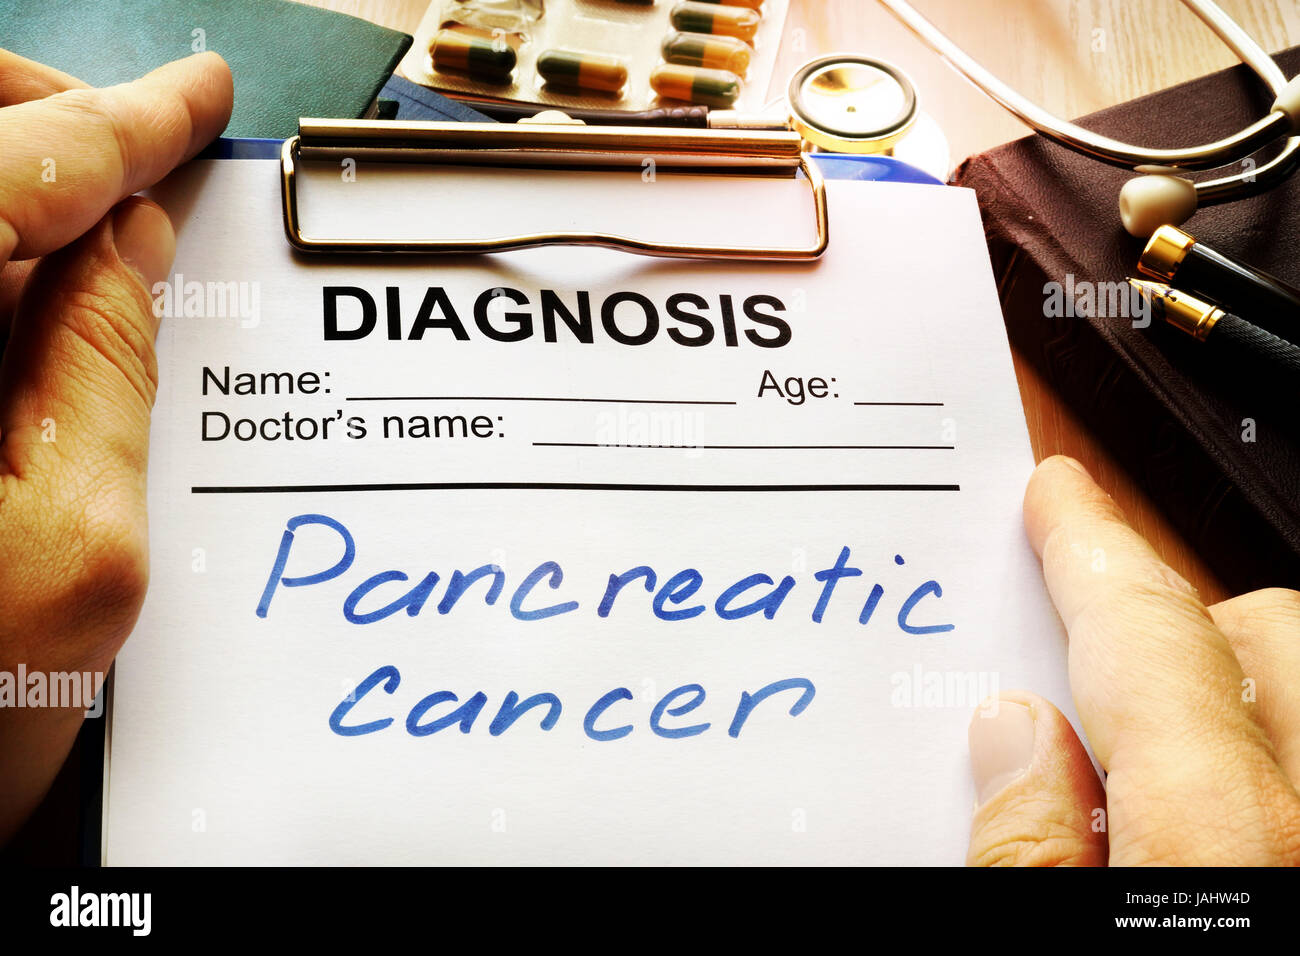 Pancreatic Cancer Stockfotos & Pancreatic Cancer Bilder - Alamy